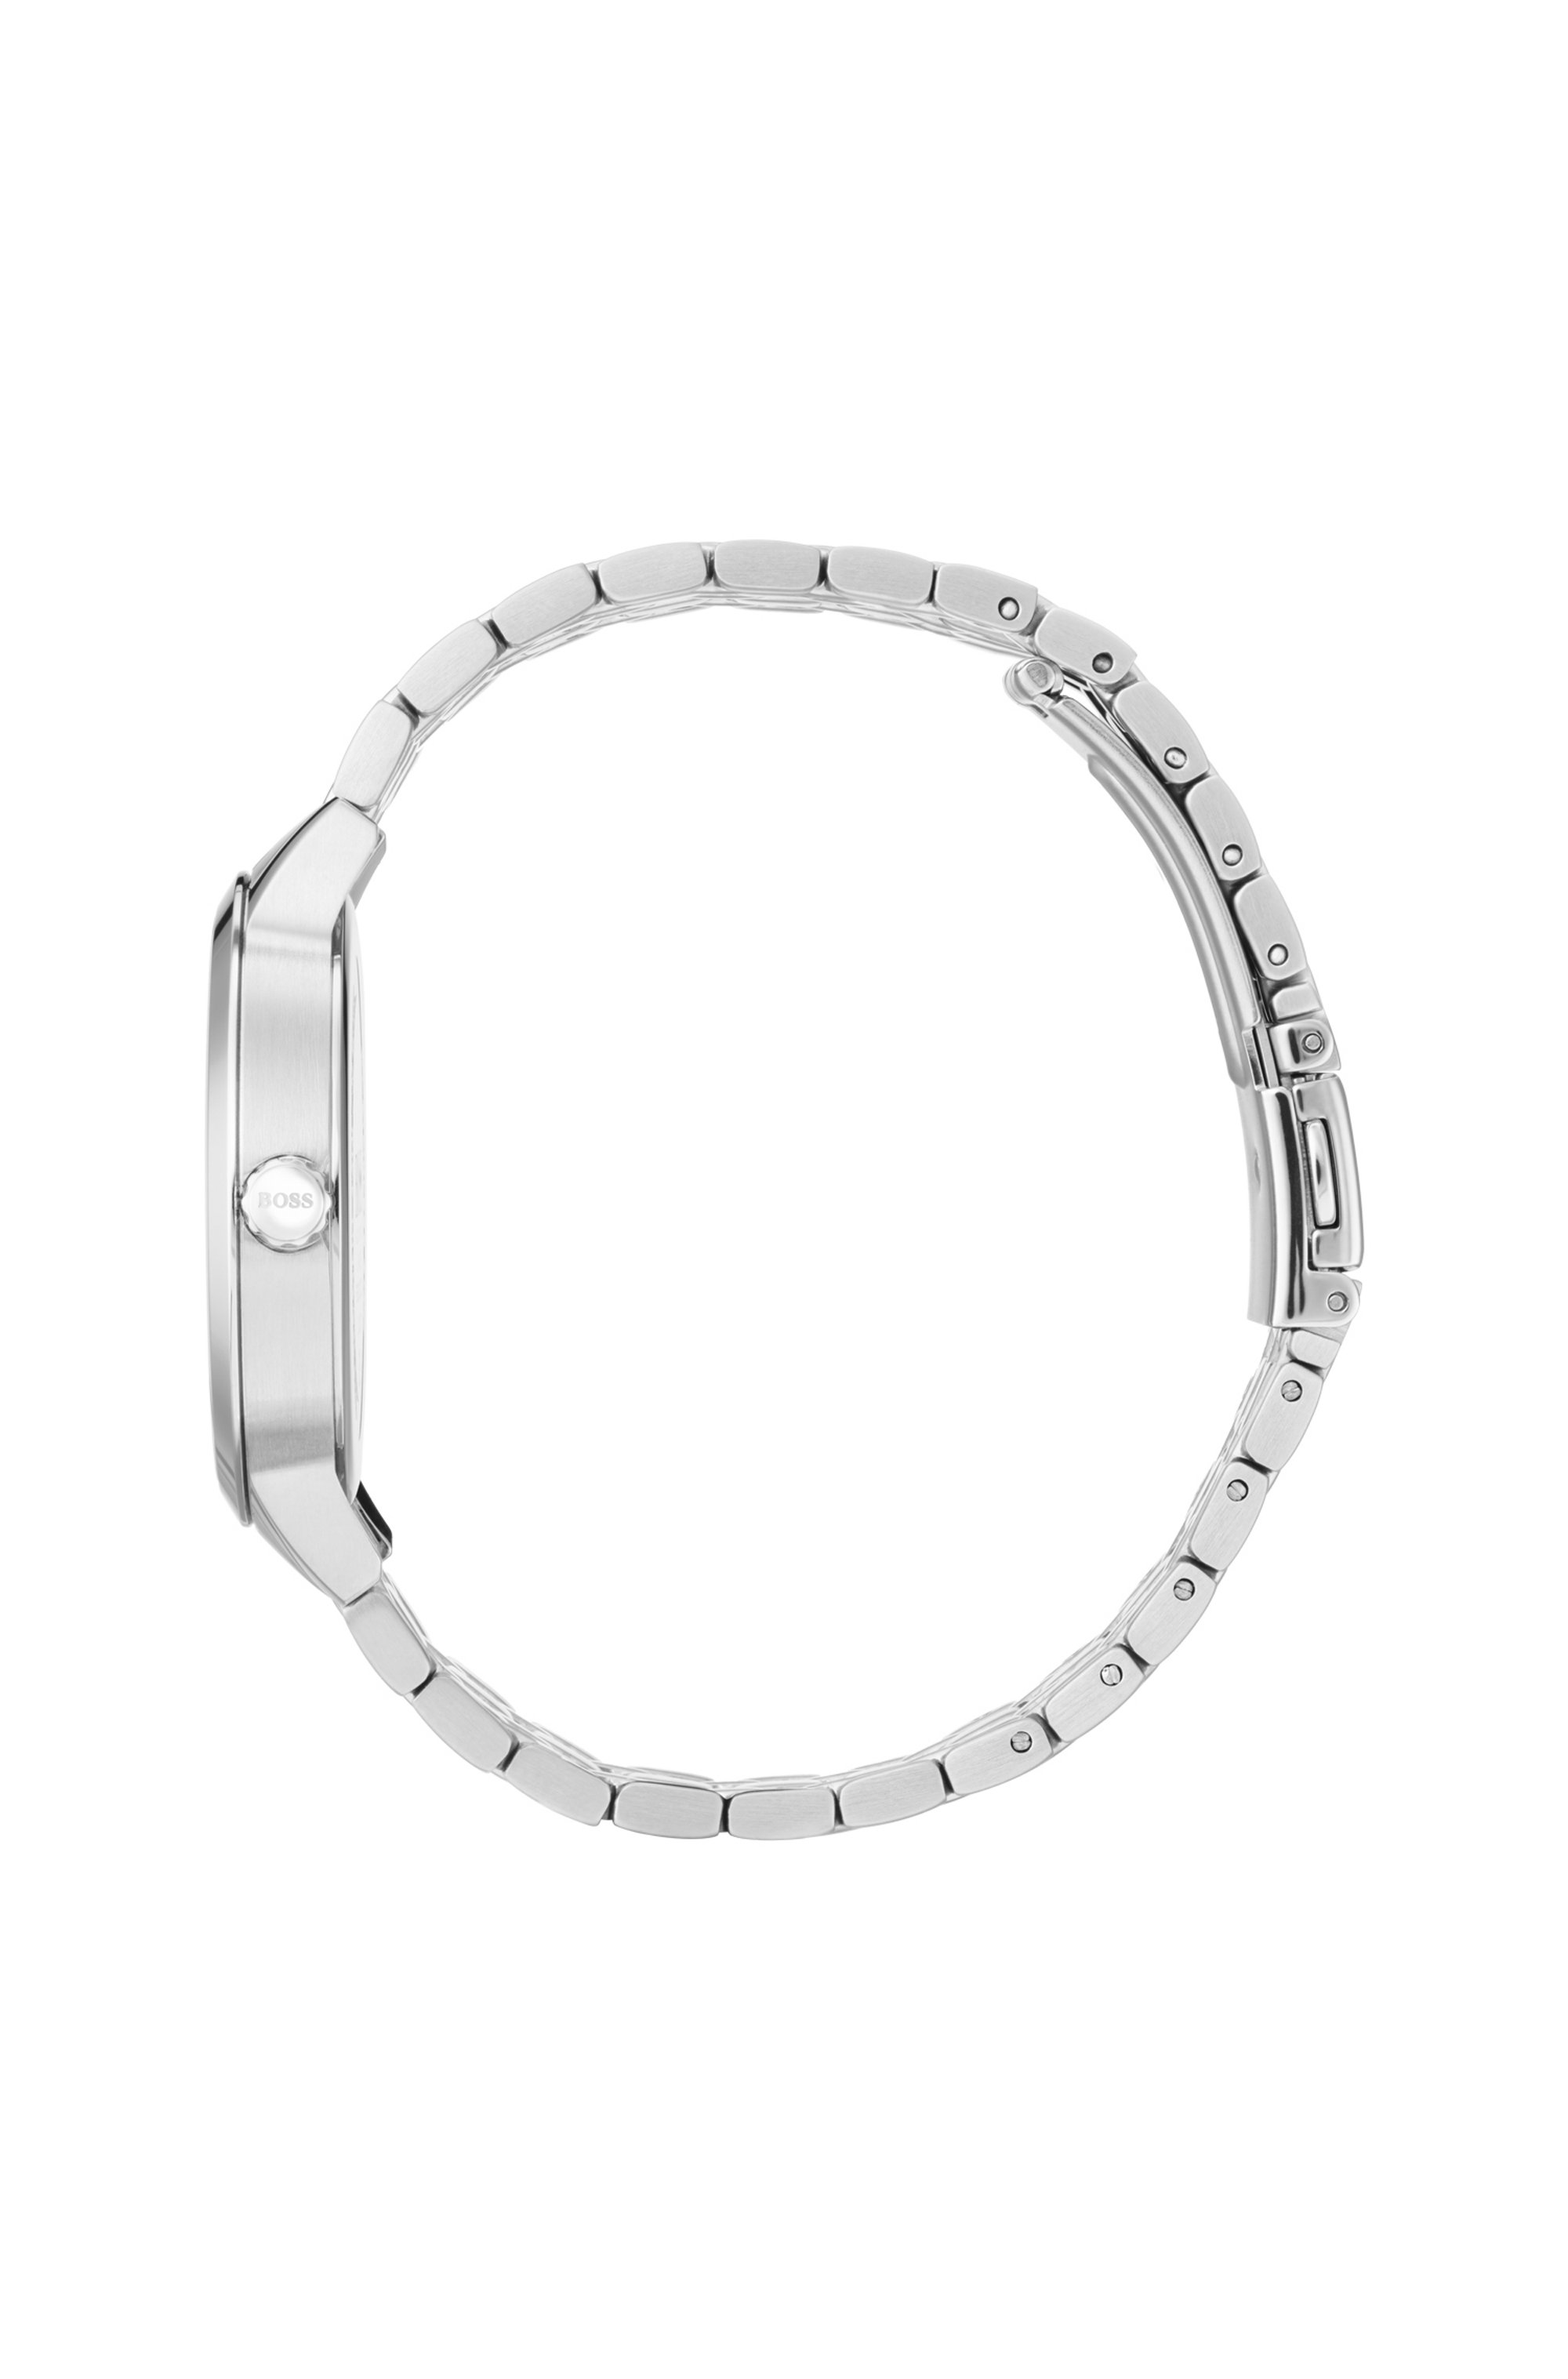 Stainless-steel watch with two-tier dial and link bracelet